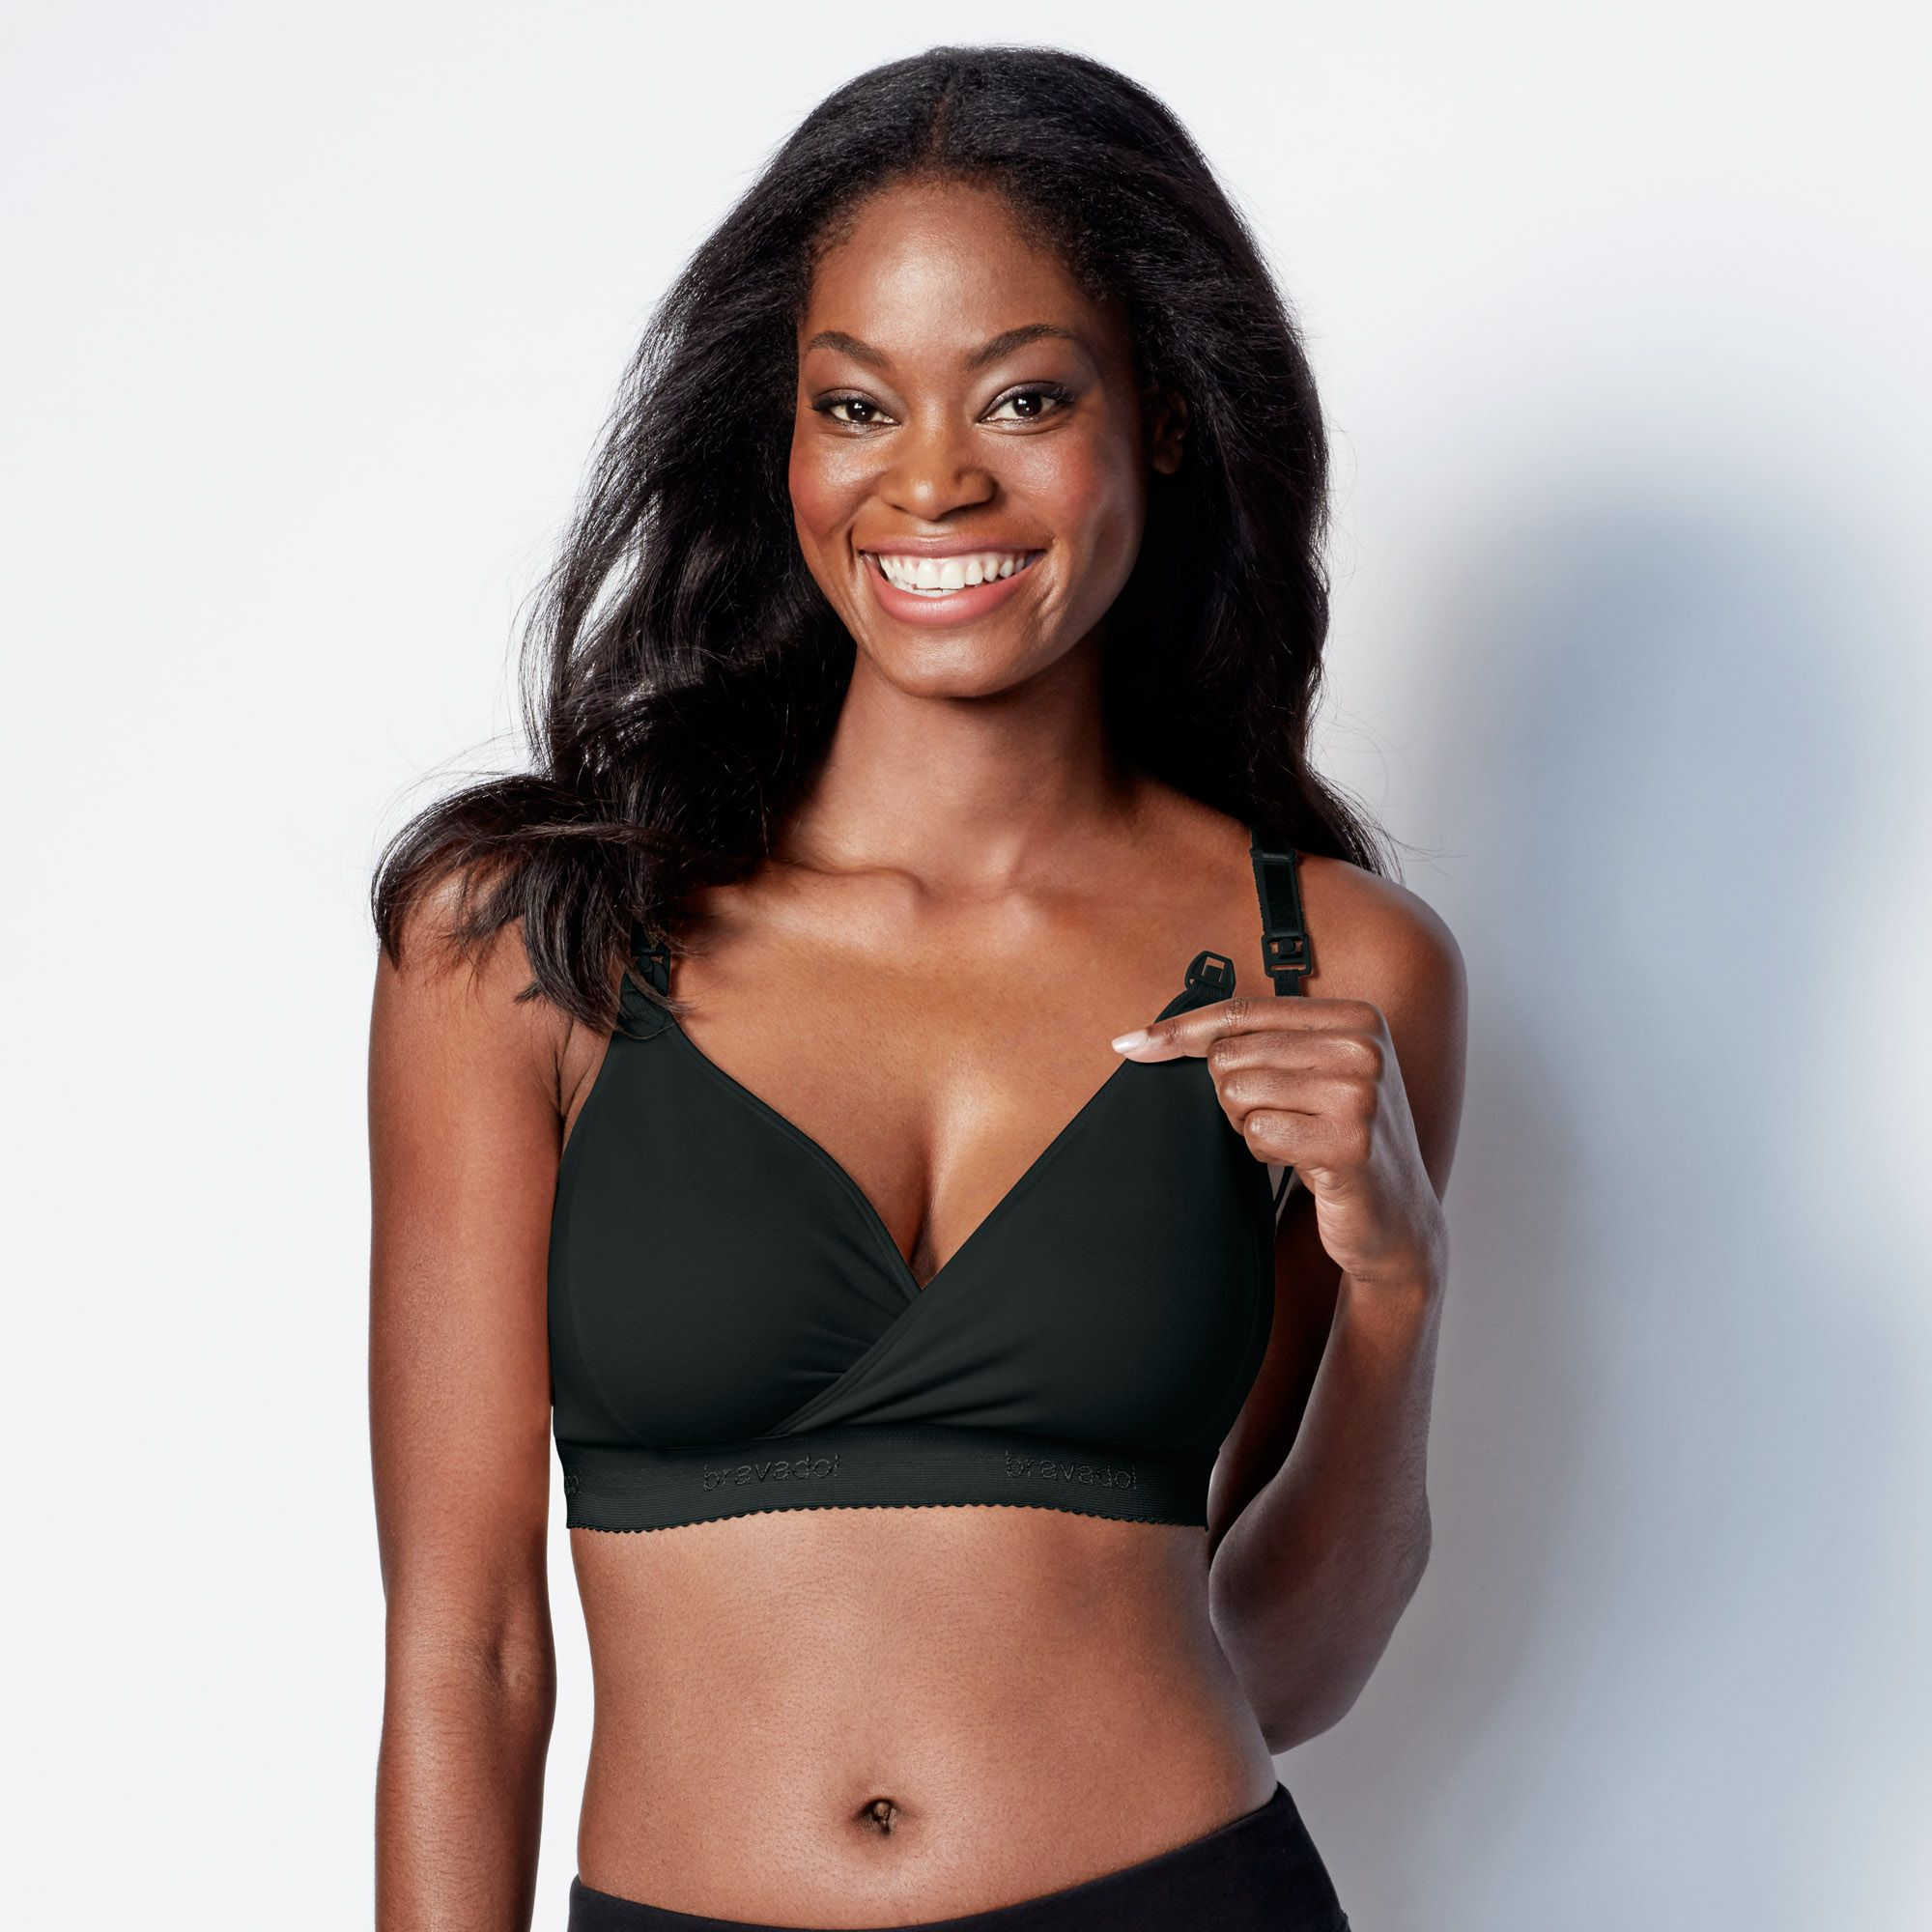 af8c0ef95e The Original Nursing Bra Basic (C-D-E cup) by Bravado. Simplicity is a  beautiful